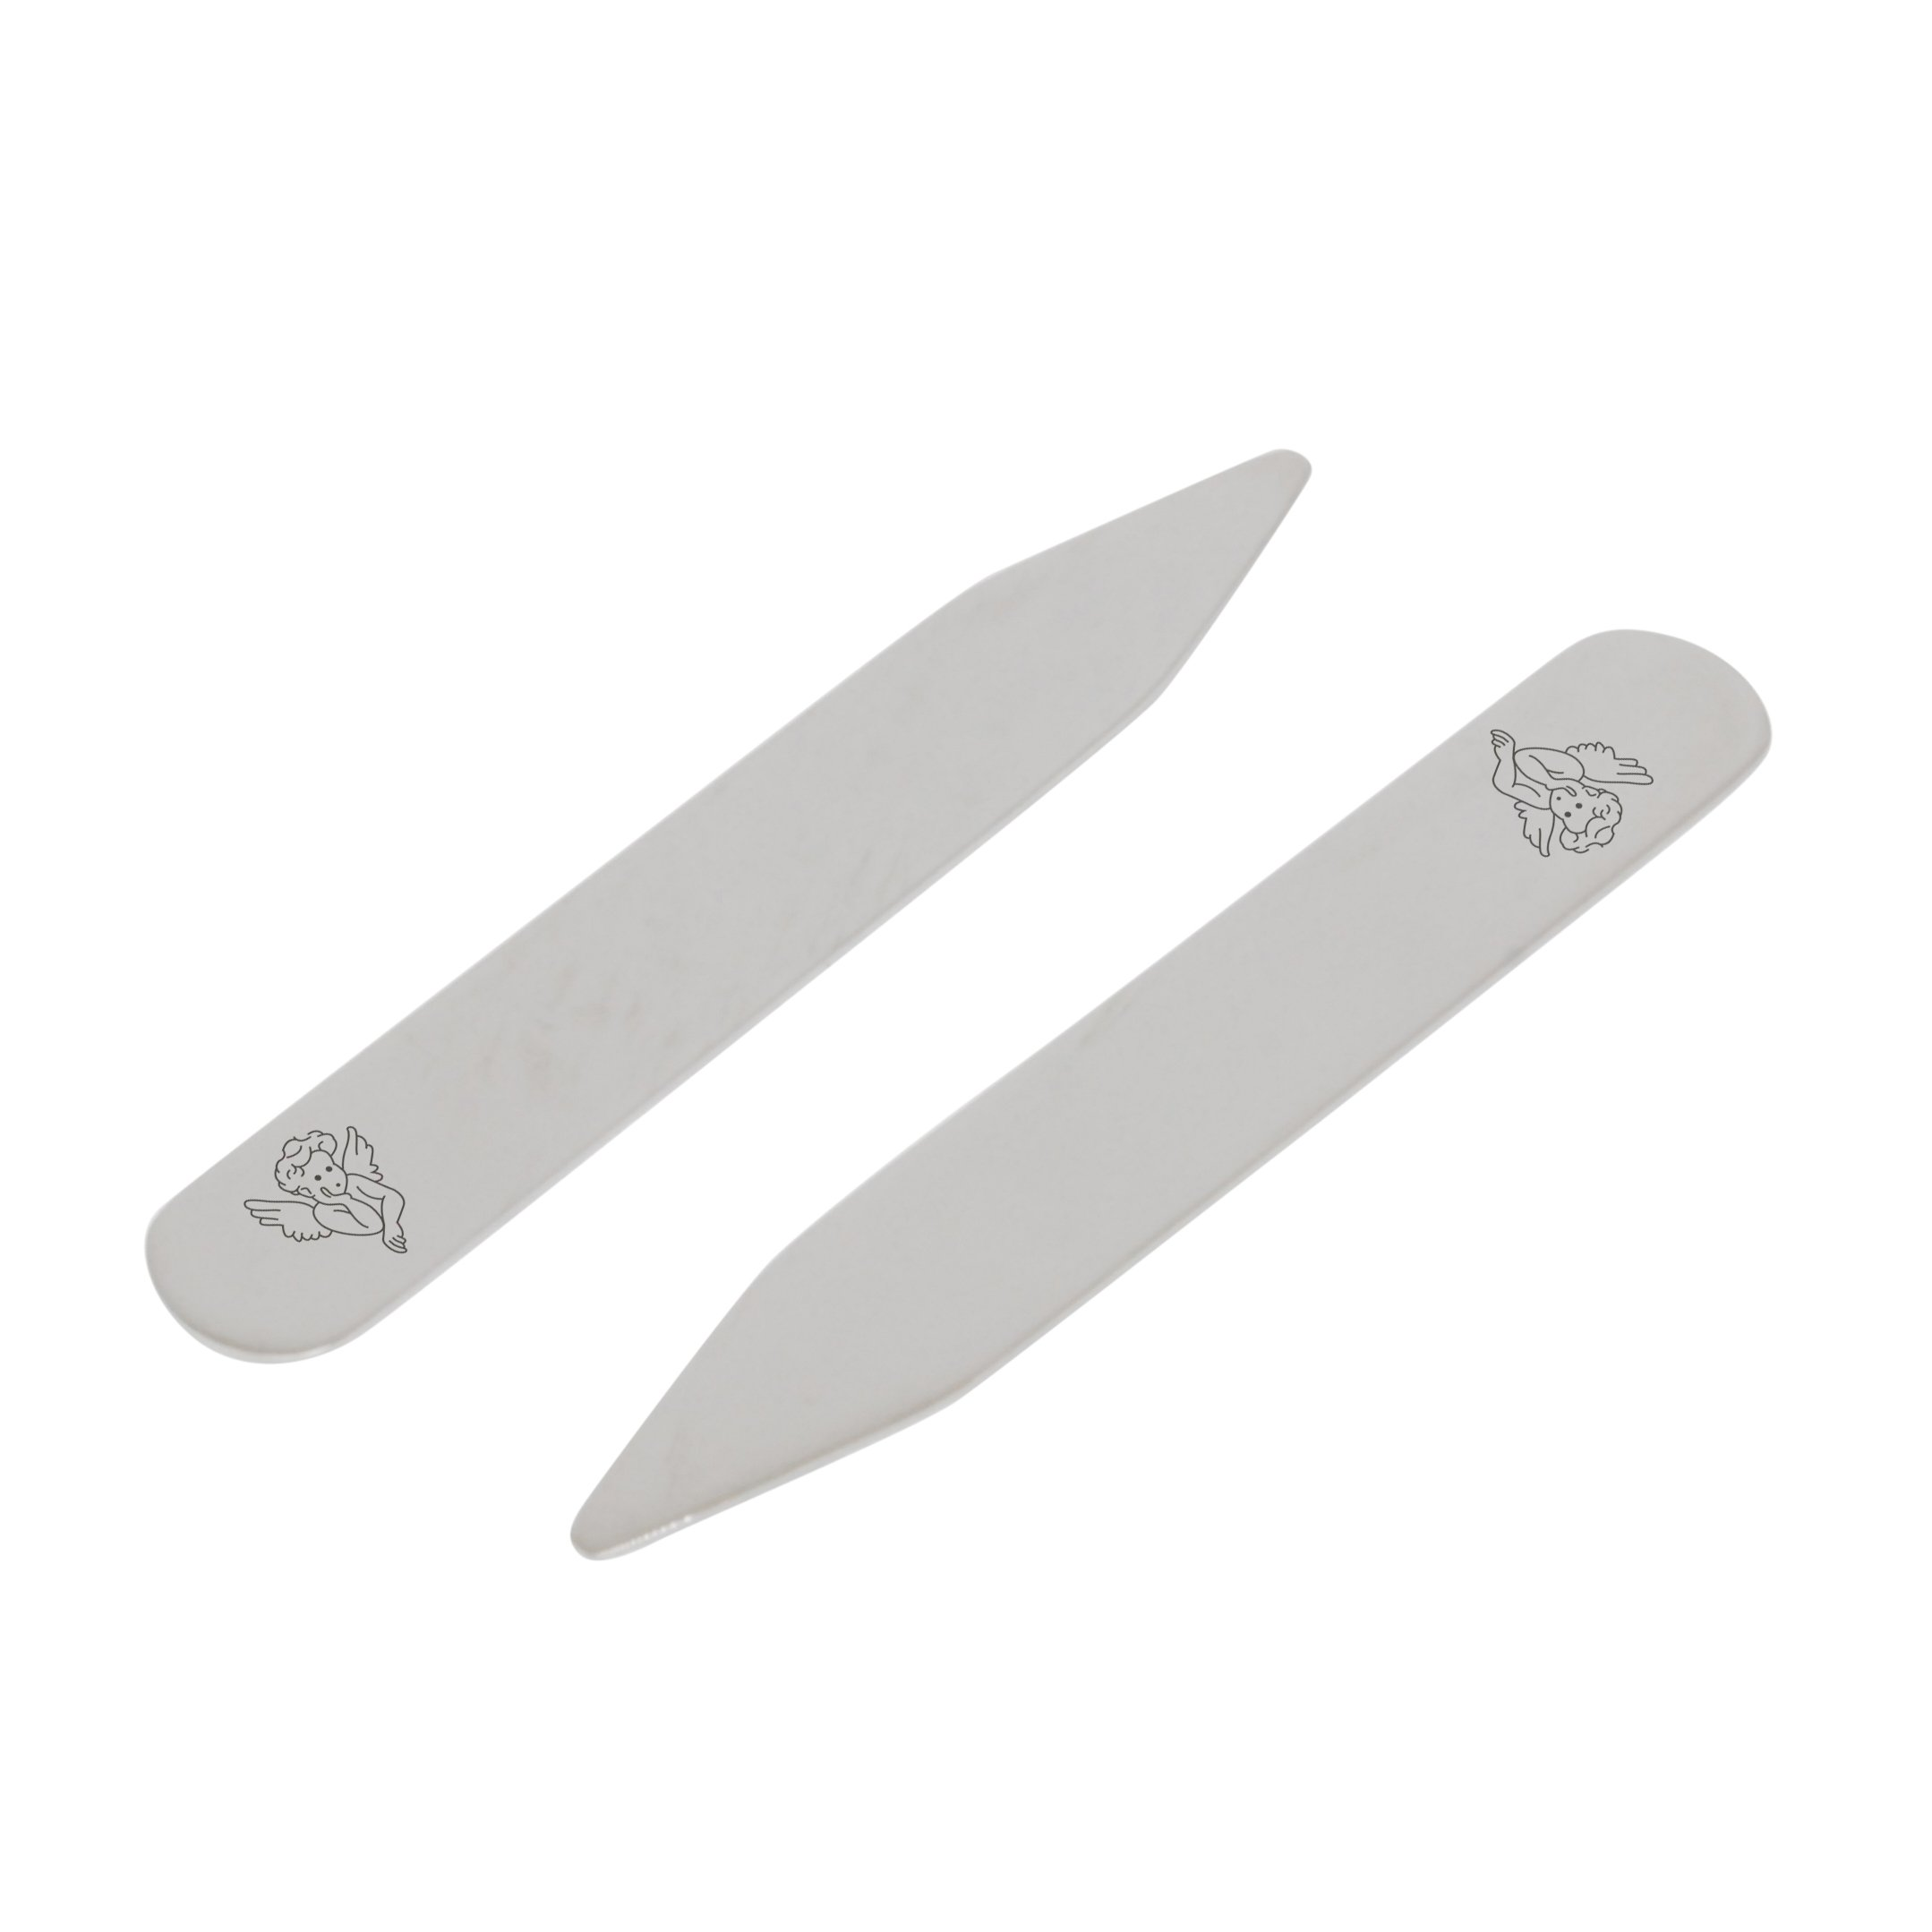 MODERN GOODS SHOP Stainless Steel Collar Stays With Laser Engraved Winged Cherub Design - 2.5 Inch Metal Collar Stiffeners - Made In USA